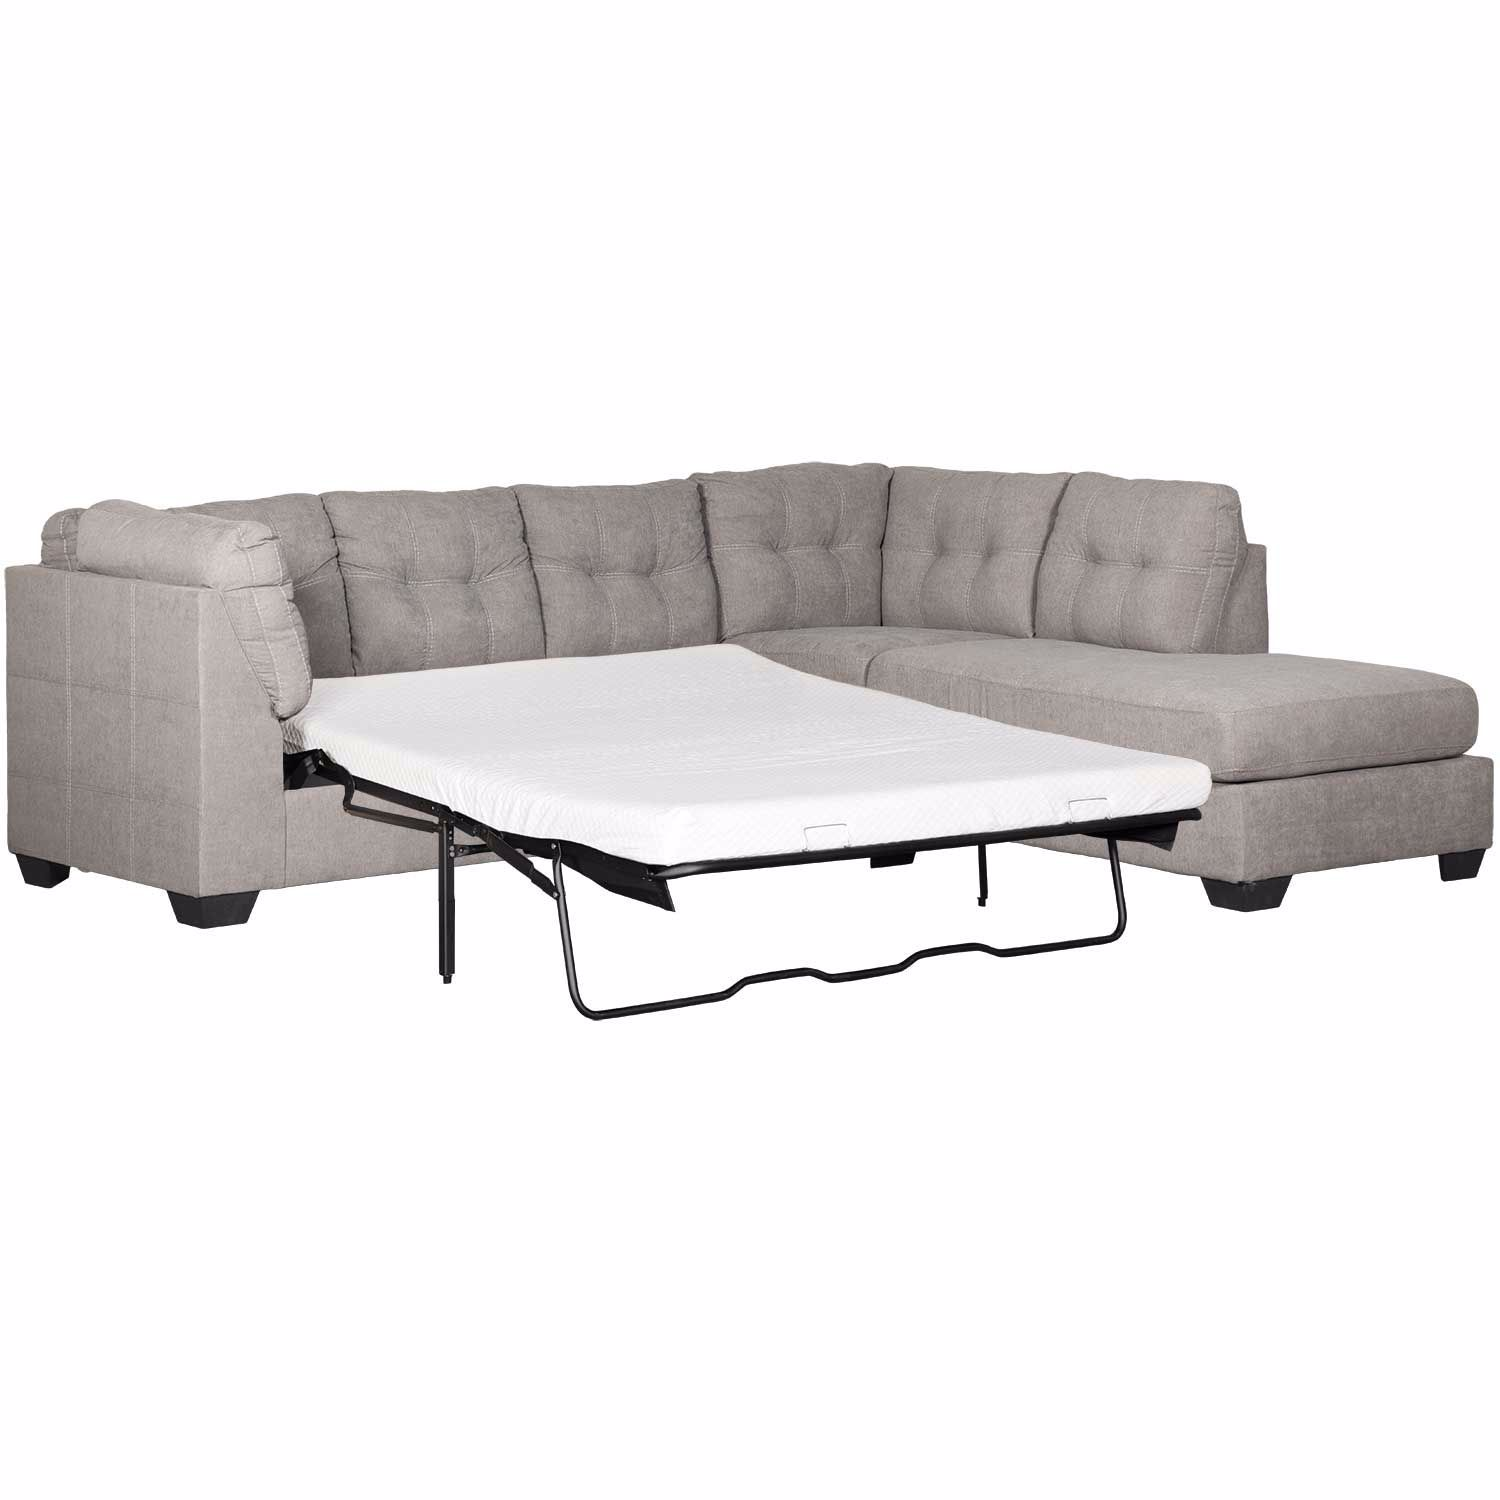 - Maier Charcoal 2 Piece Sleeper Sectional With RAF Chaise 4520017